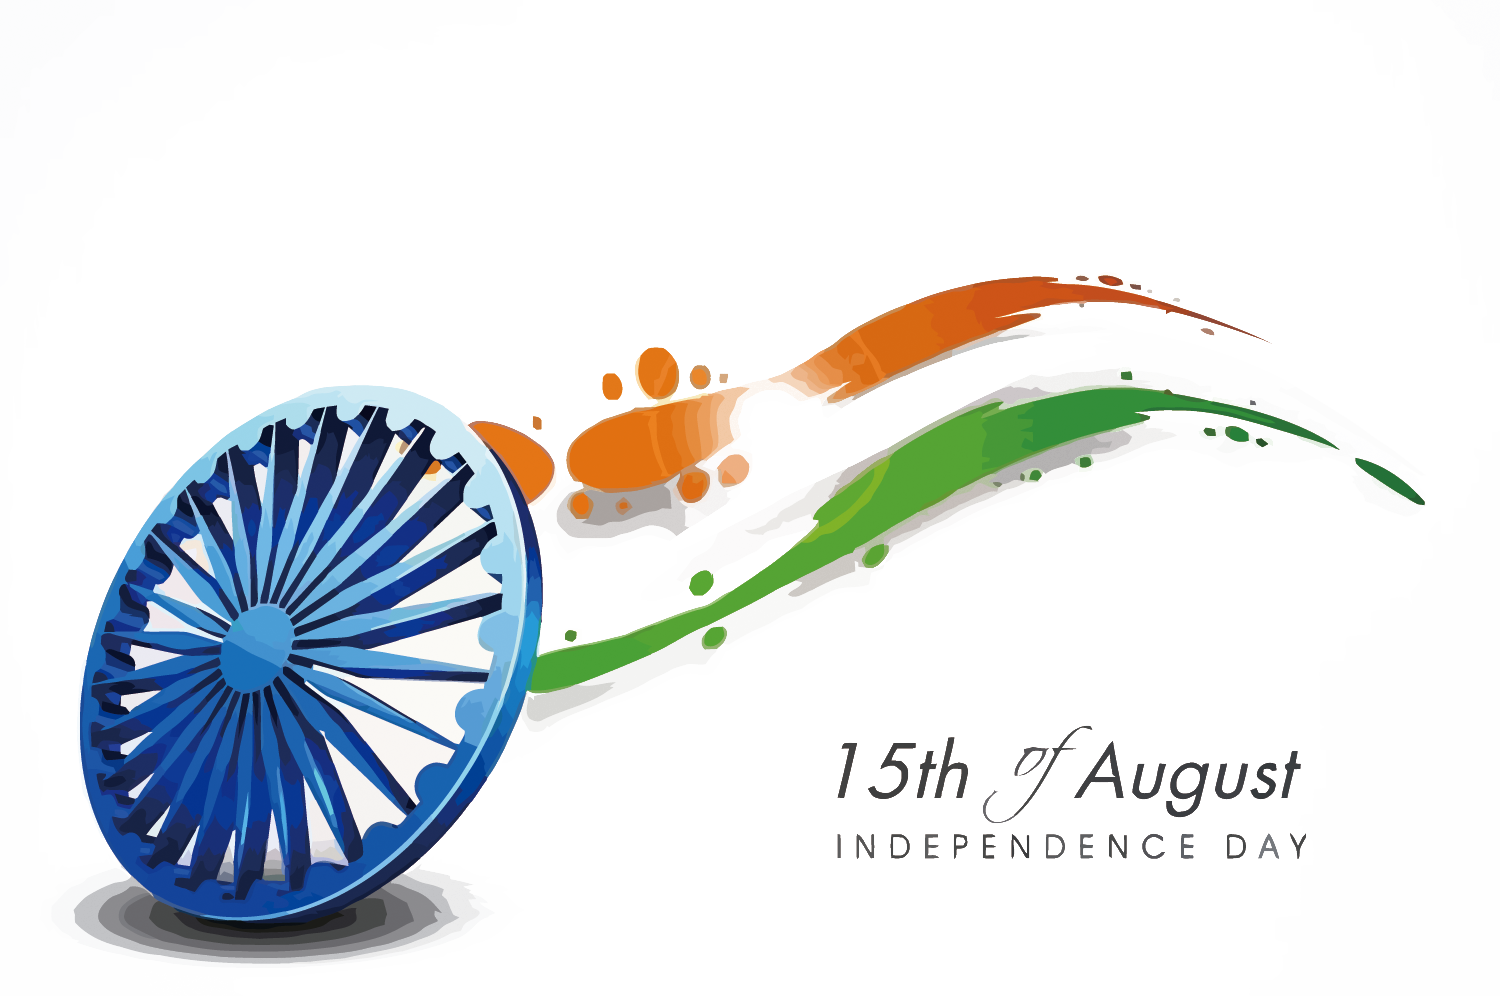 15 August Brand Wallpaper Indian Computer Day PNG Image